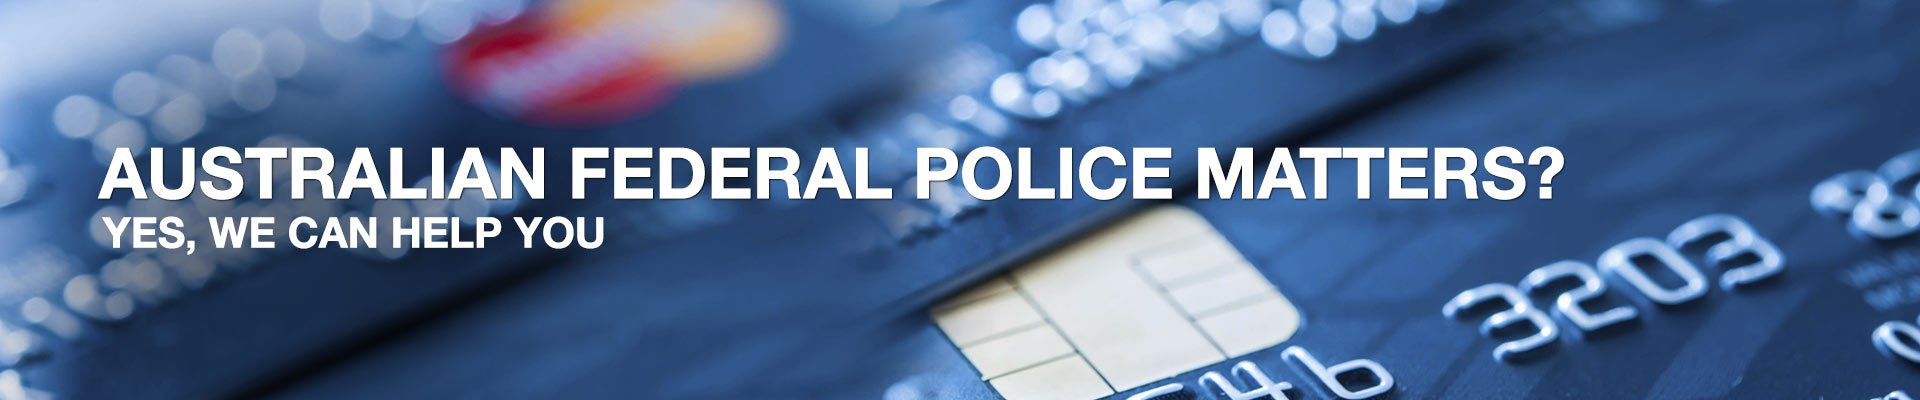 Australian Federal police matters?